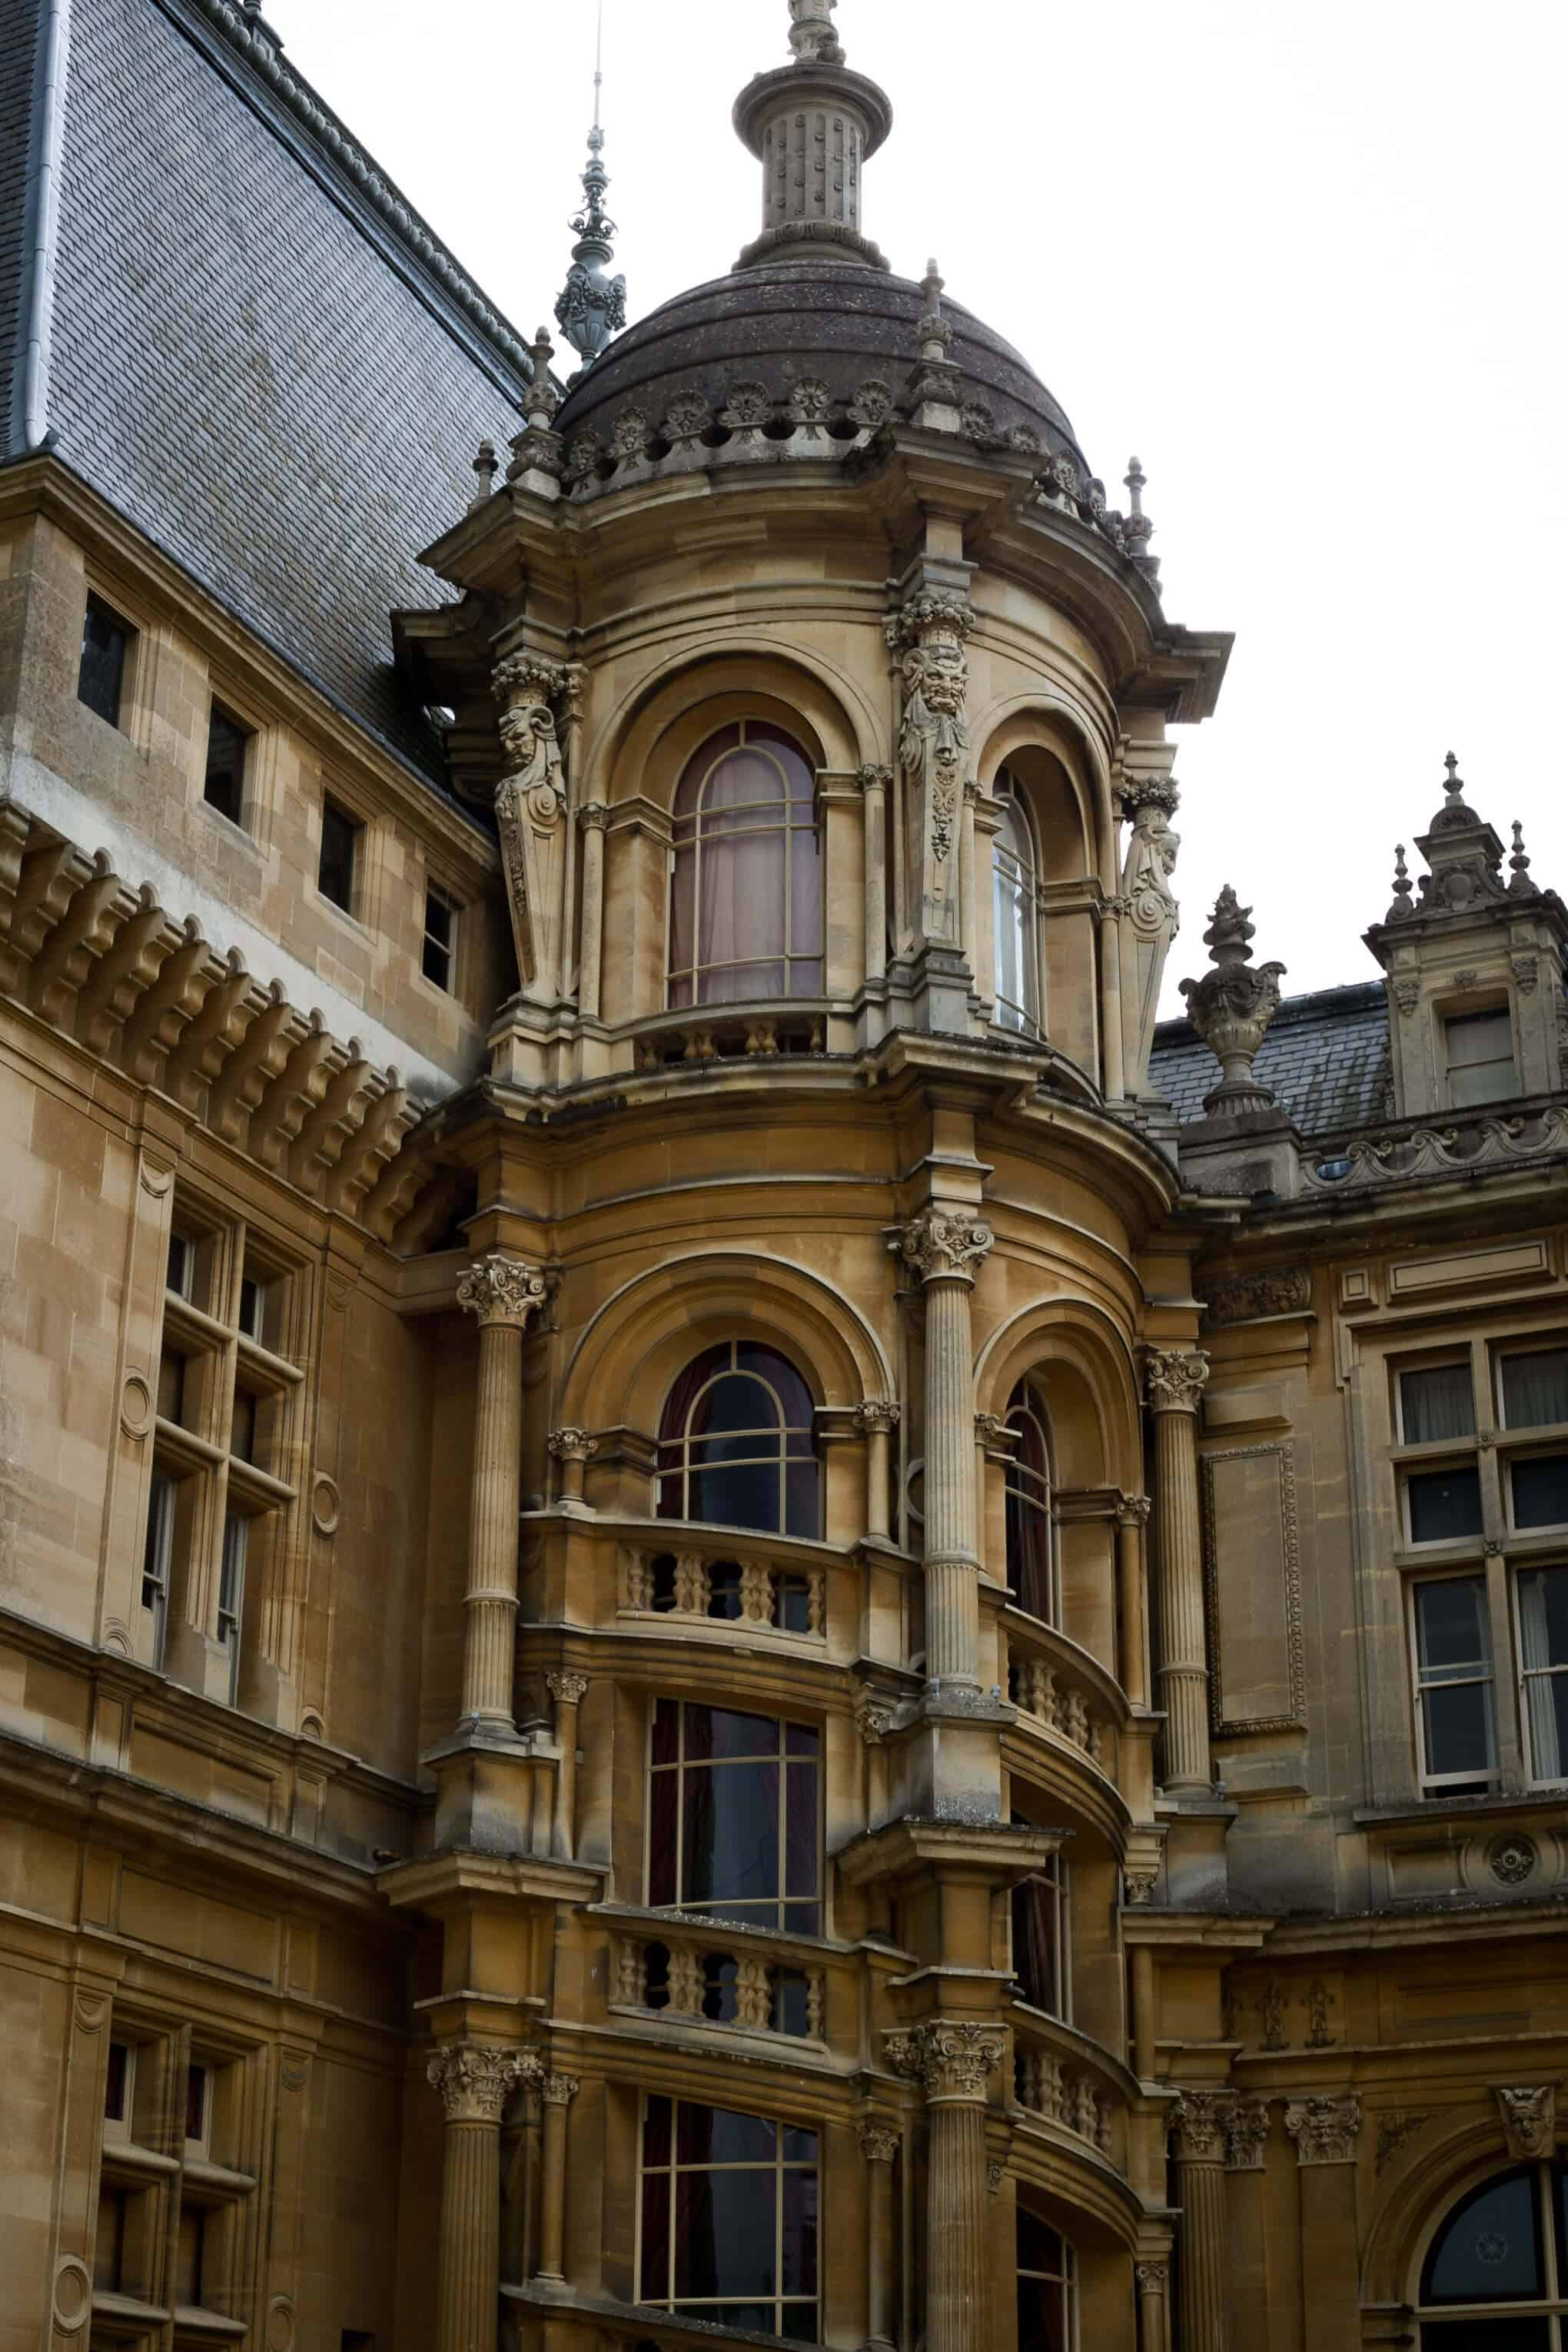 Waddesdon manor in Buckinghamshire | via @annabanana.co